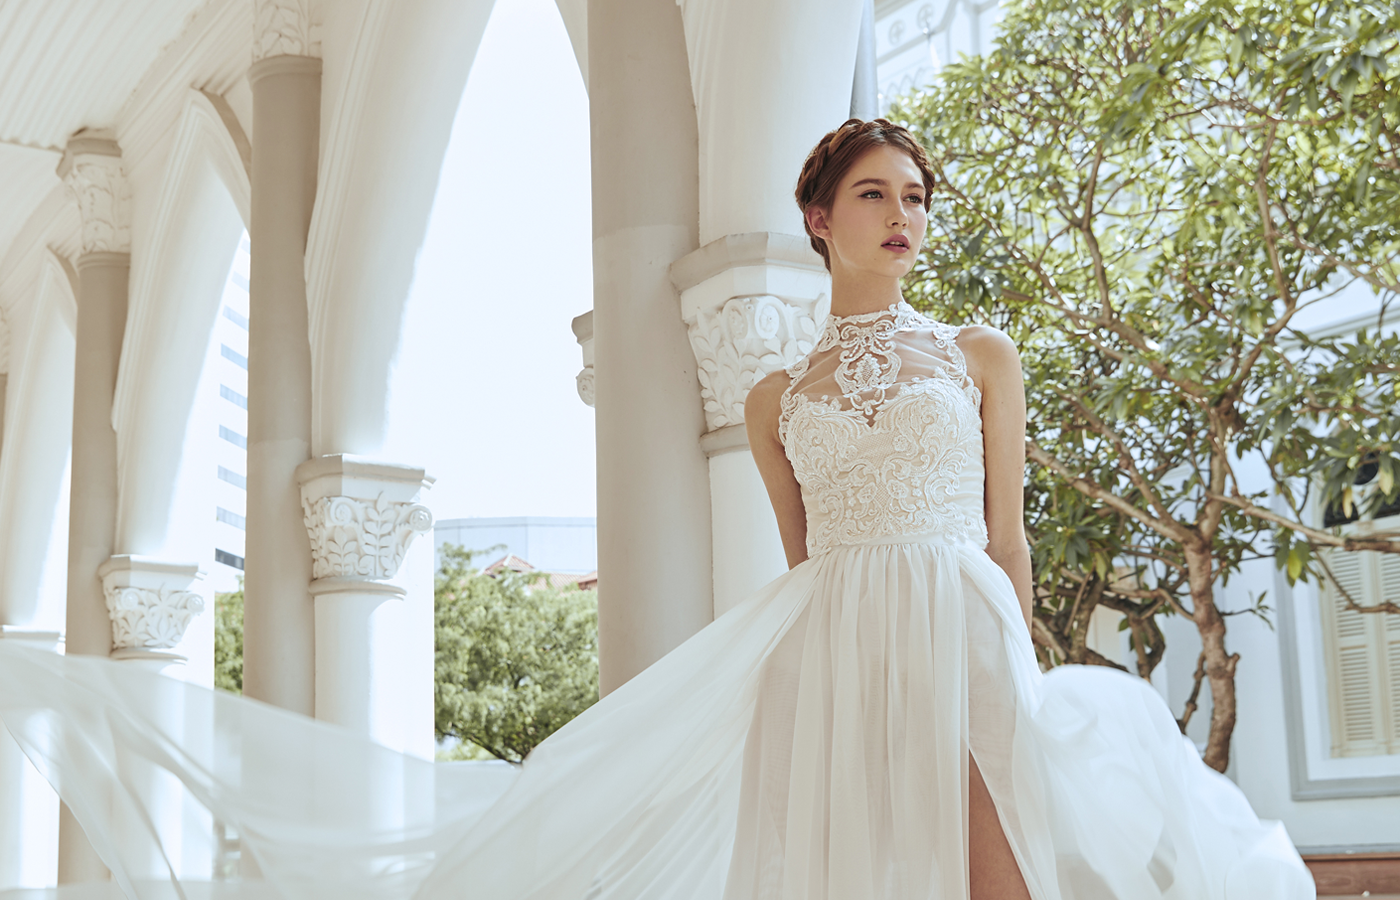 Ethereal by Watabe Wedding